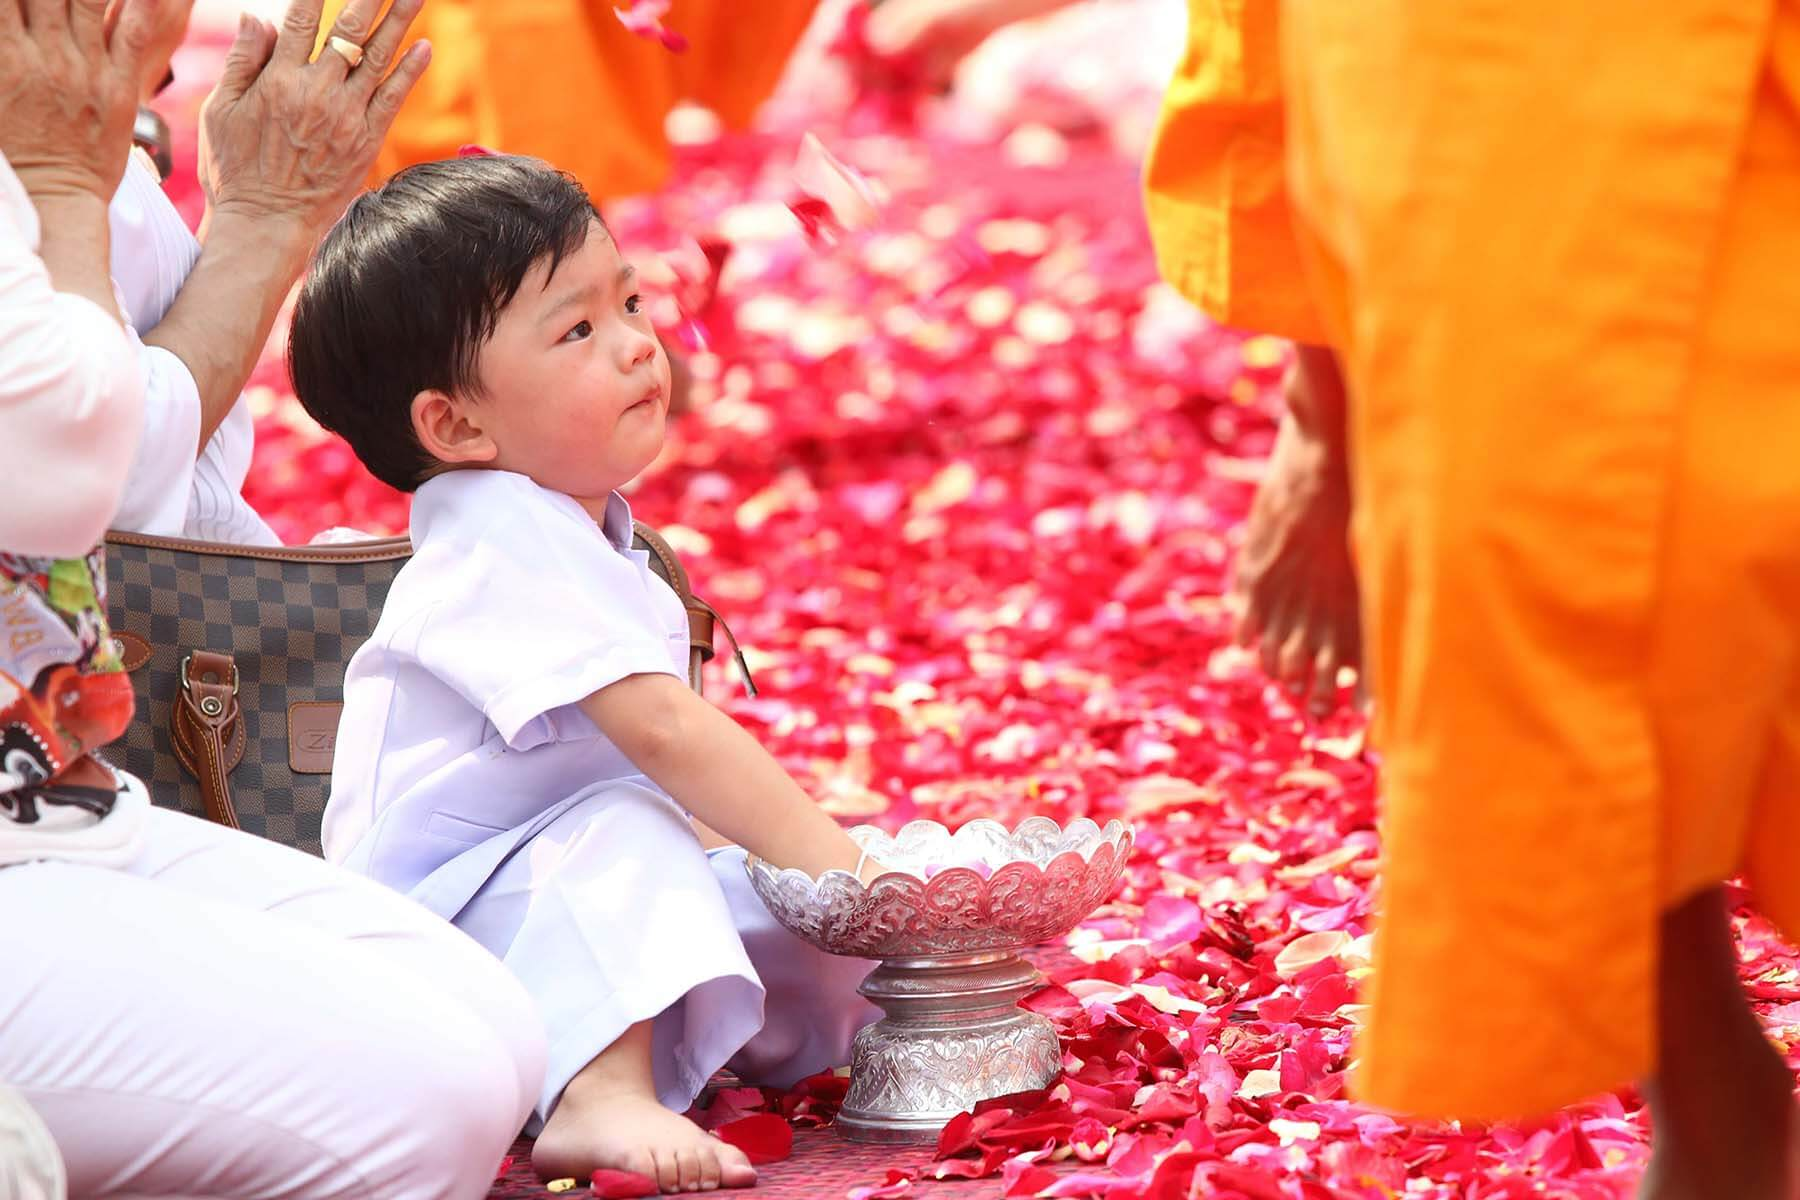 Toddler surrounded by flowers at Buddhist festival.